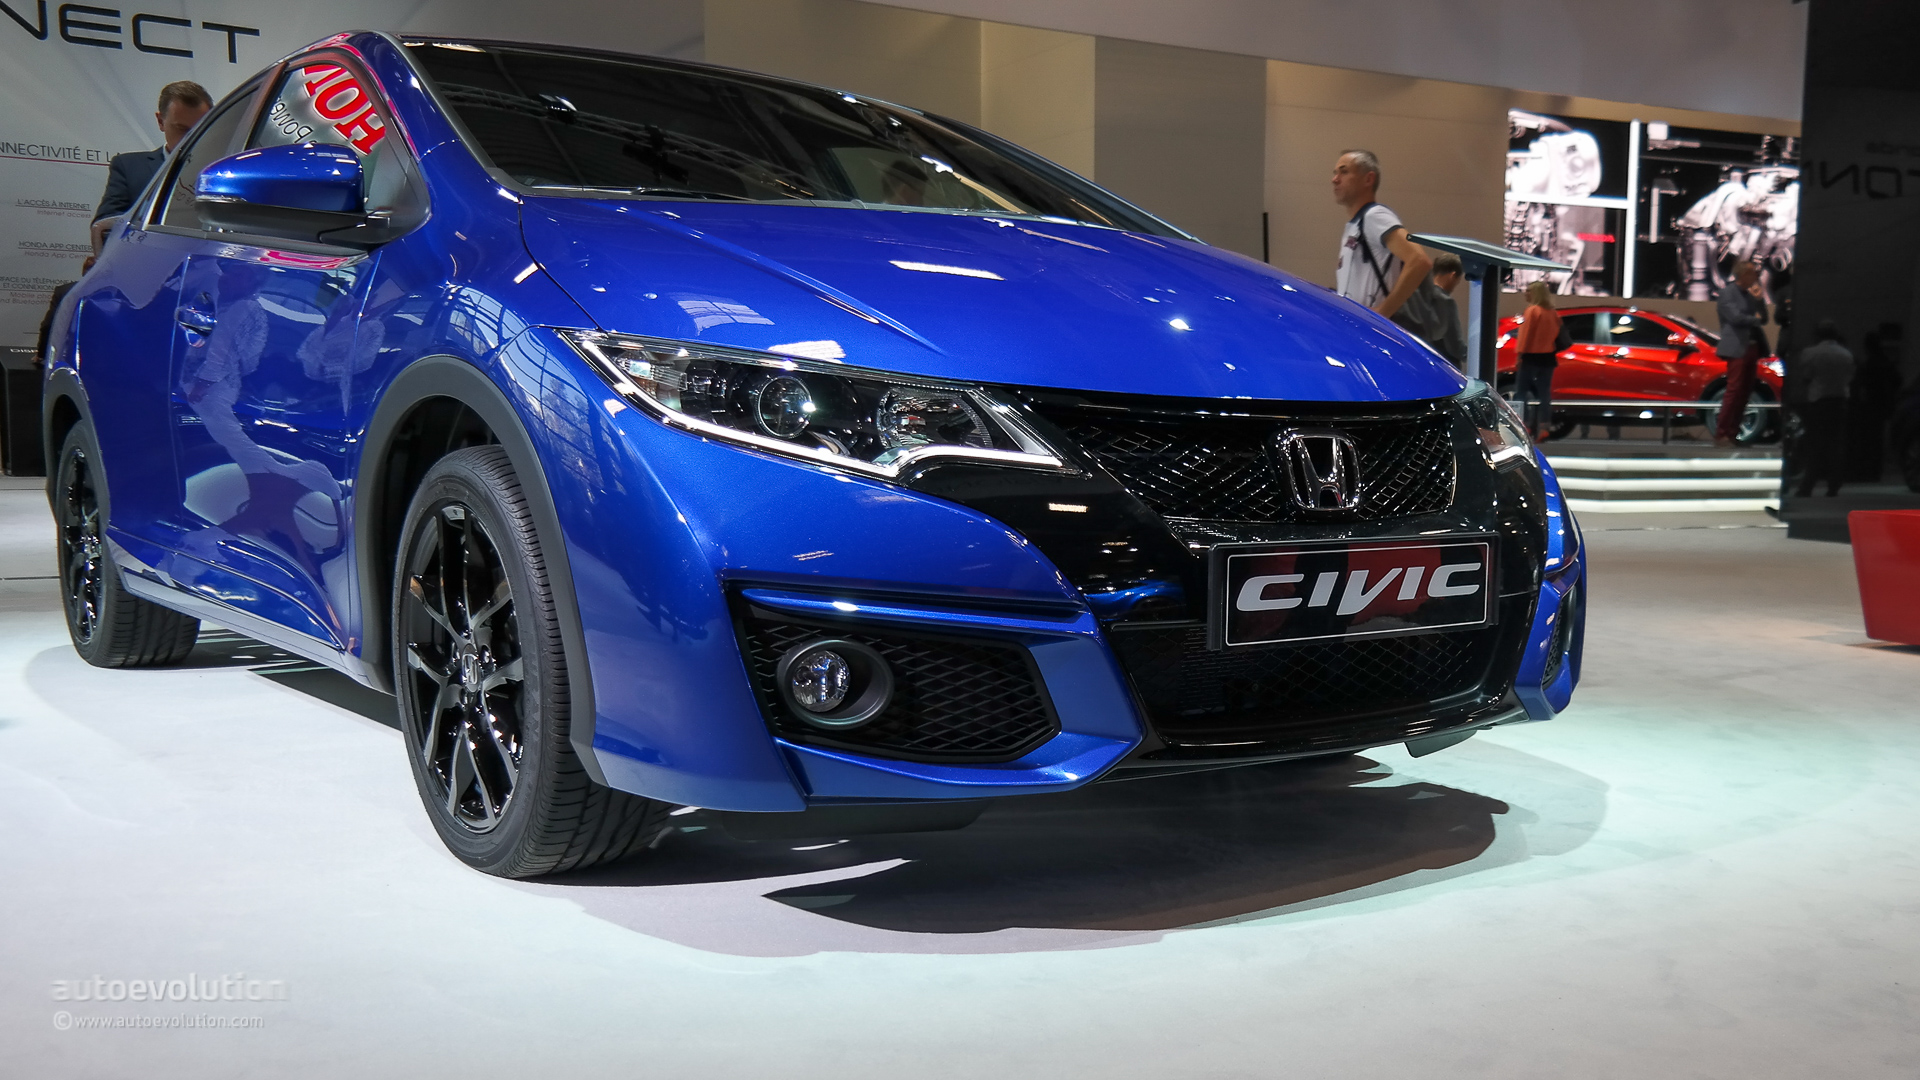 honda civic 5 door hatchback coming to the us in 2016 autoevolution. Black Bedroom Furniture Sets. Home Design Ideas